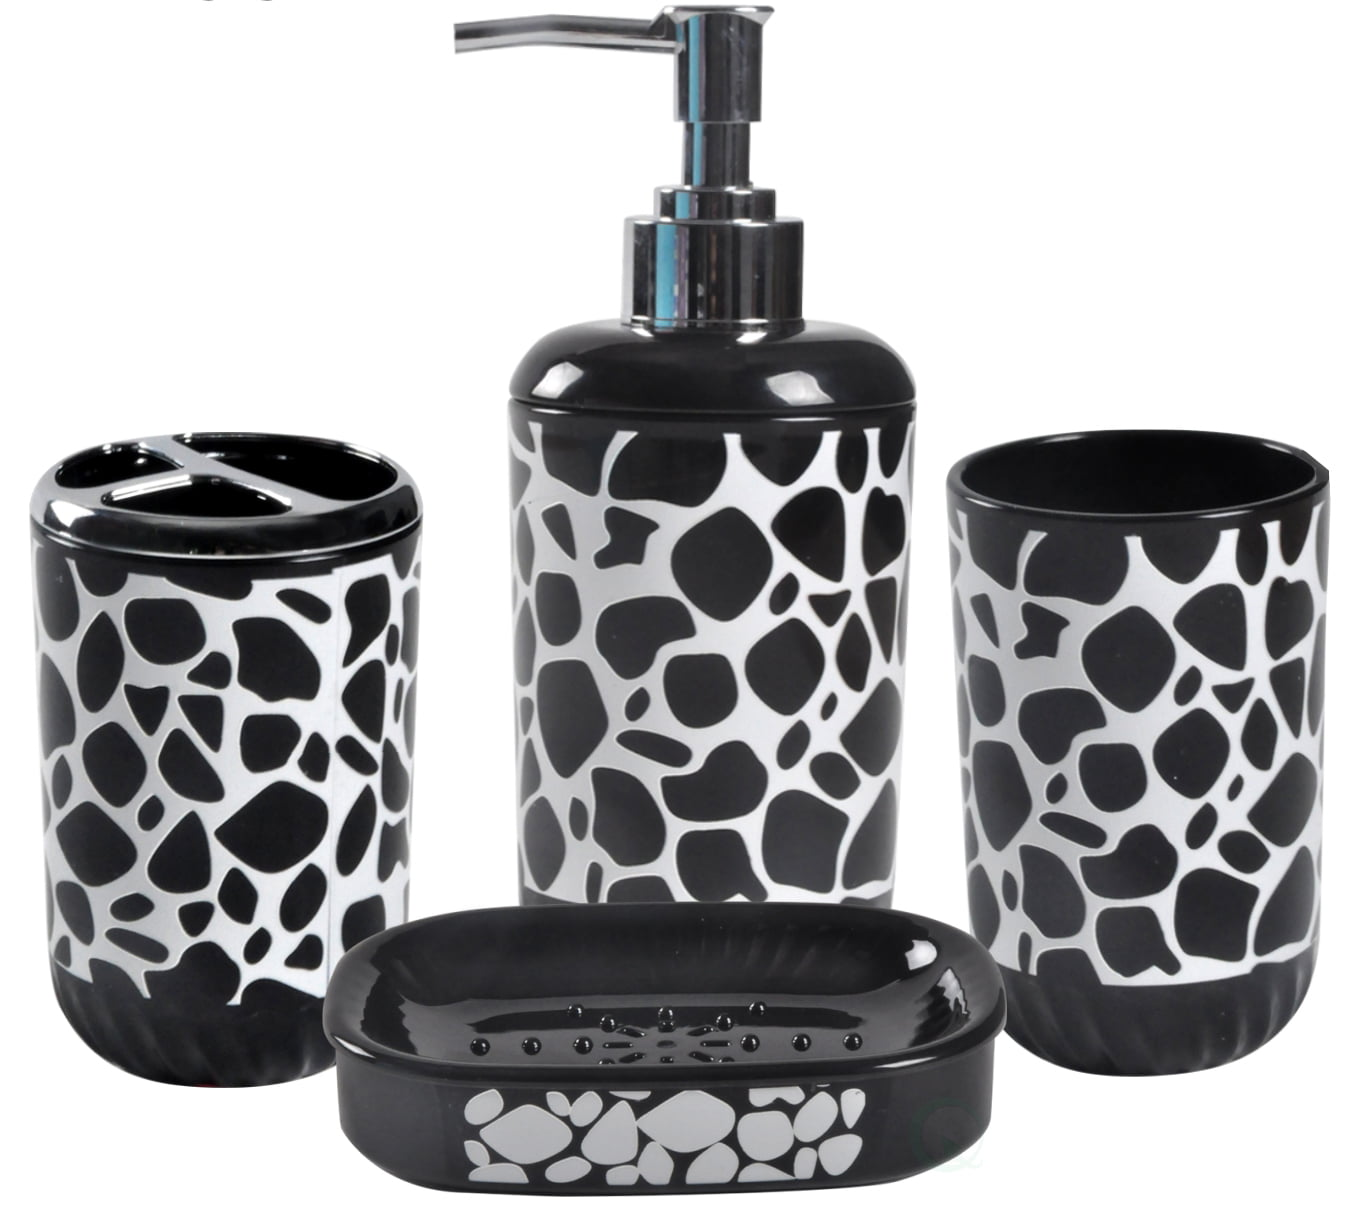 4 Piece Bathroom Accessory Set Includes Soap Dispenser, Toothbrush Holder, Tumbler, and Soap Dish by Quickway Imports Inc